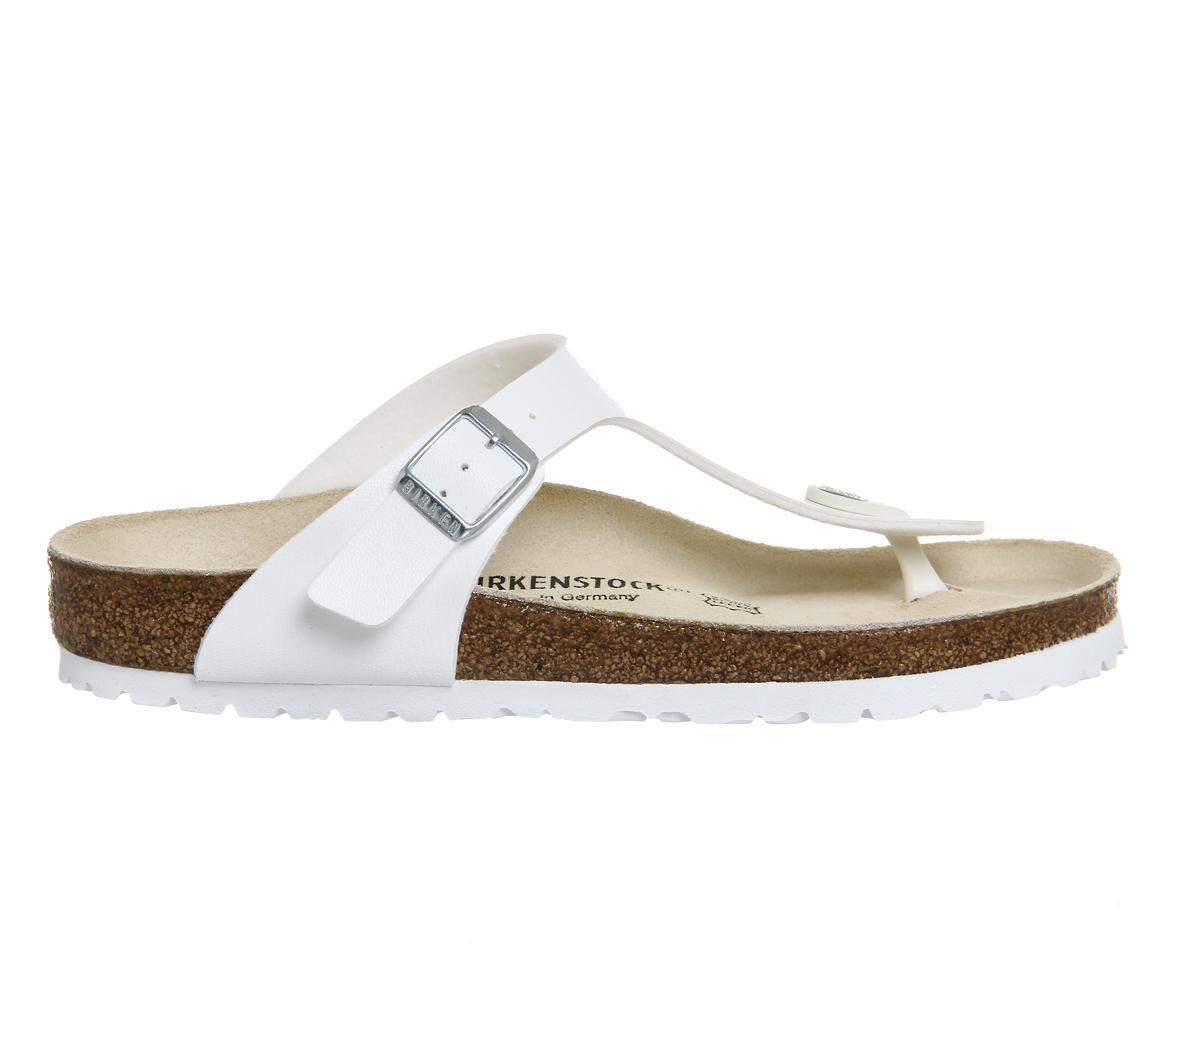 a574bbc828037 Lyst - Birkenstock Gizeh Toe Thong Footbed in White